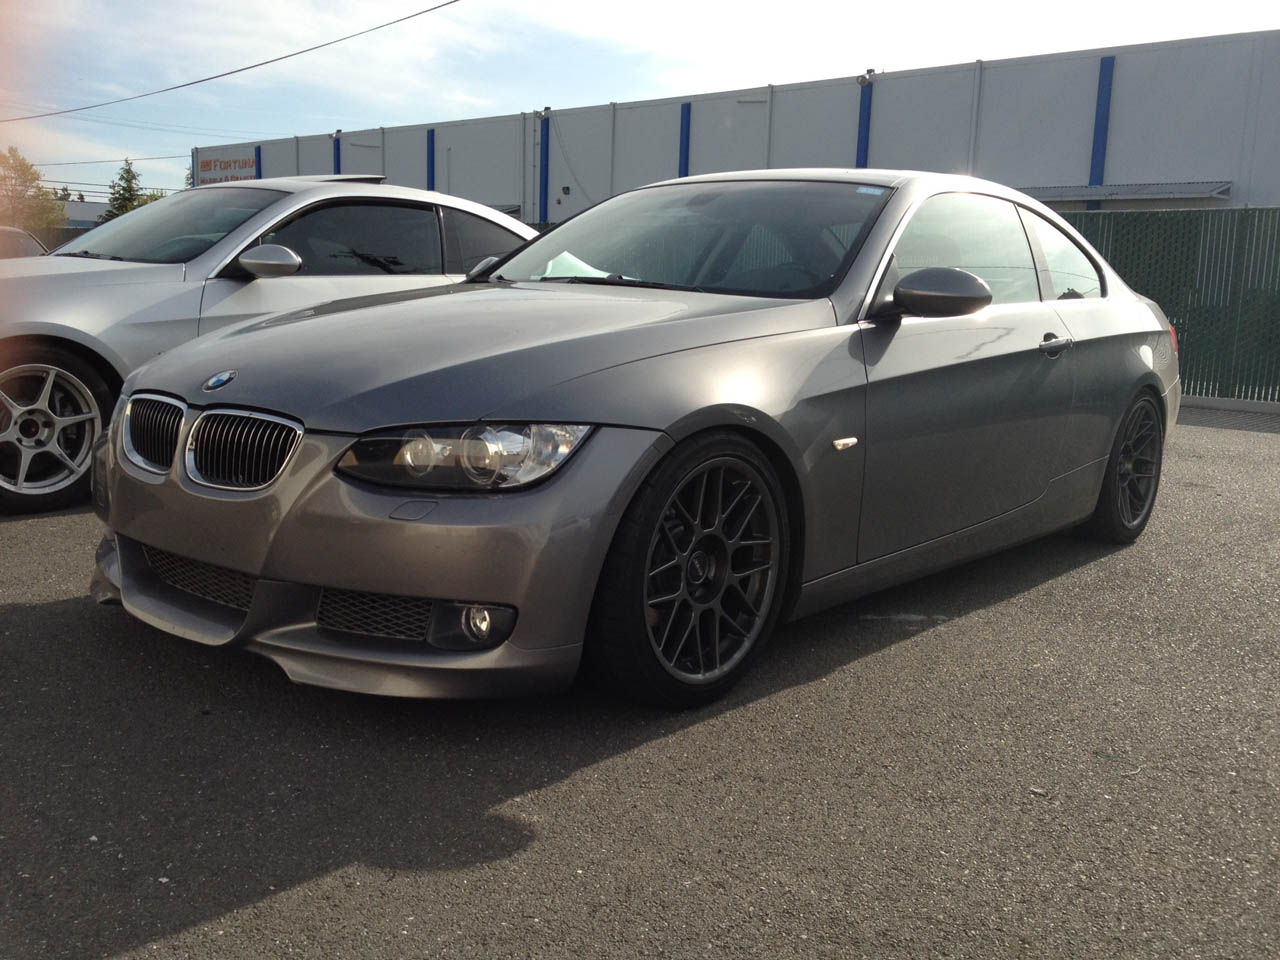 2007 bmw 335i coupe vishnu procede 1 4 mile drag racing. Black Bedroom Furniture Sets. Home Design Ideas